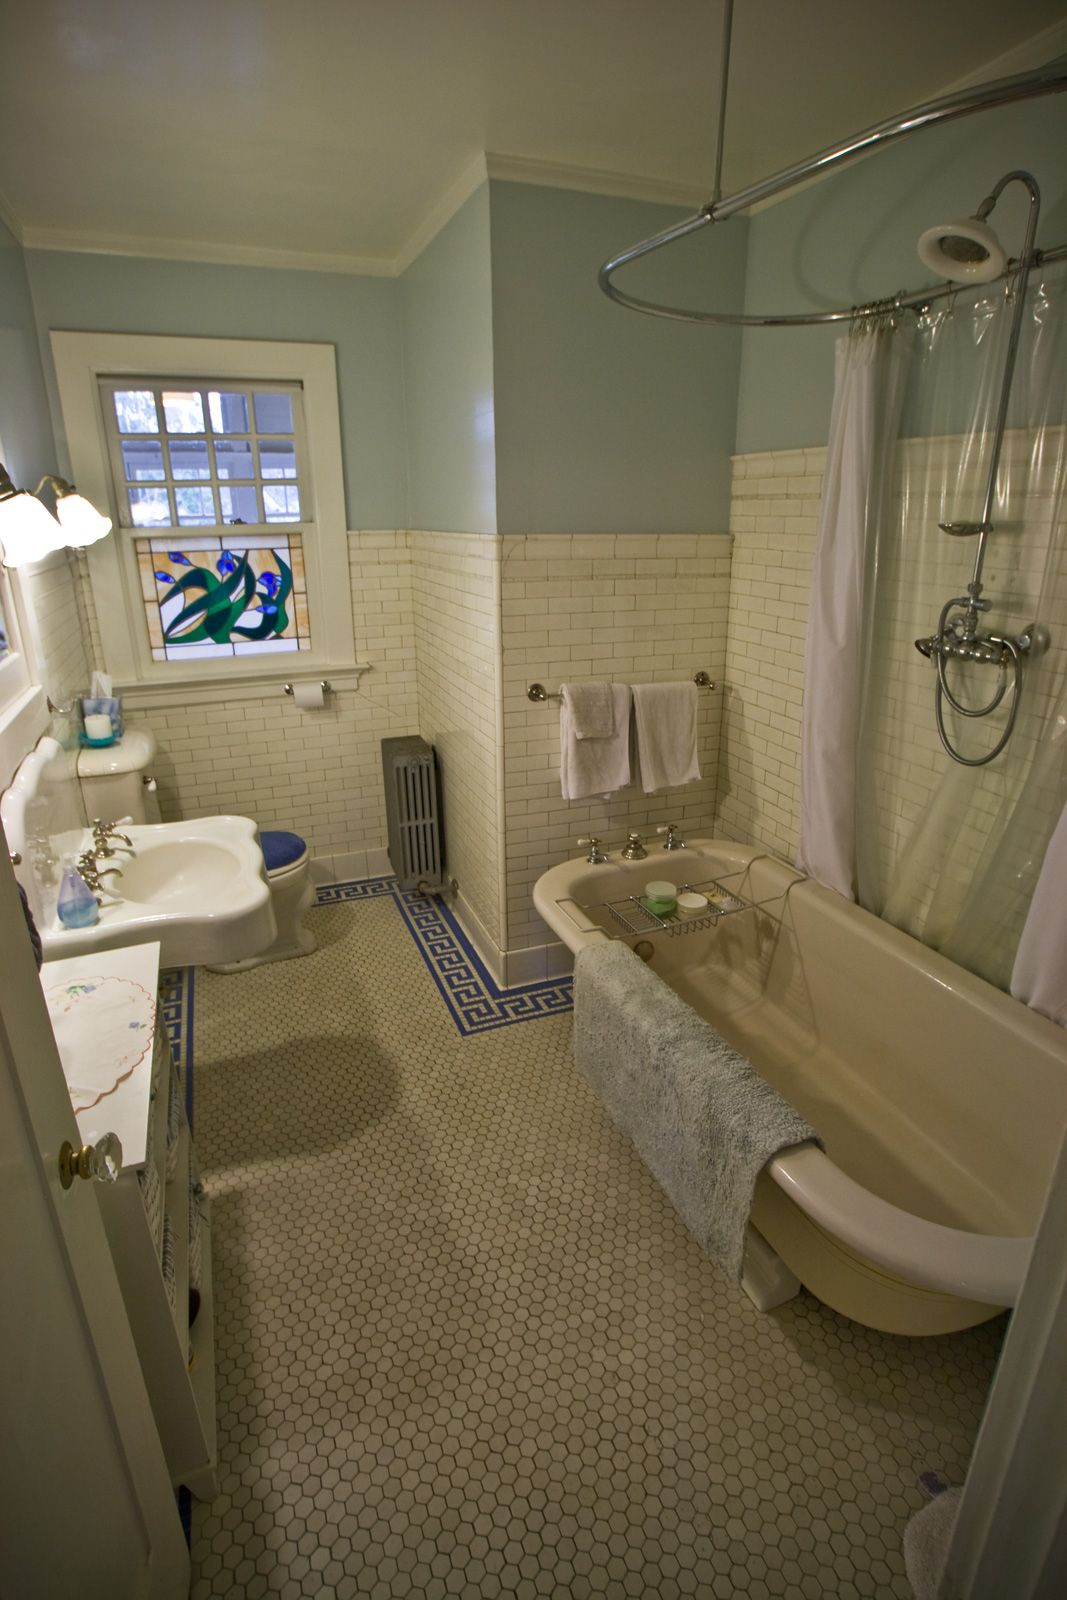 1910 Gem Of A Montlake Craftsman (in Seattle, WA): Upstairs Bathroom With  Original Tile And Bathtub. Like Subway Tile On Wall And Hexagon Floor Tile